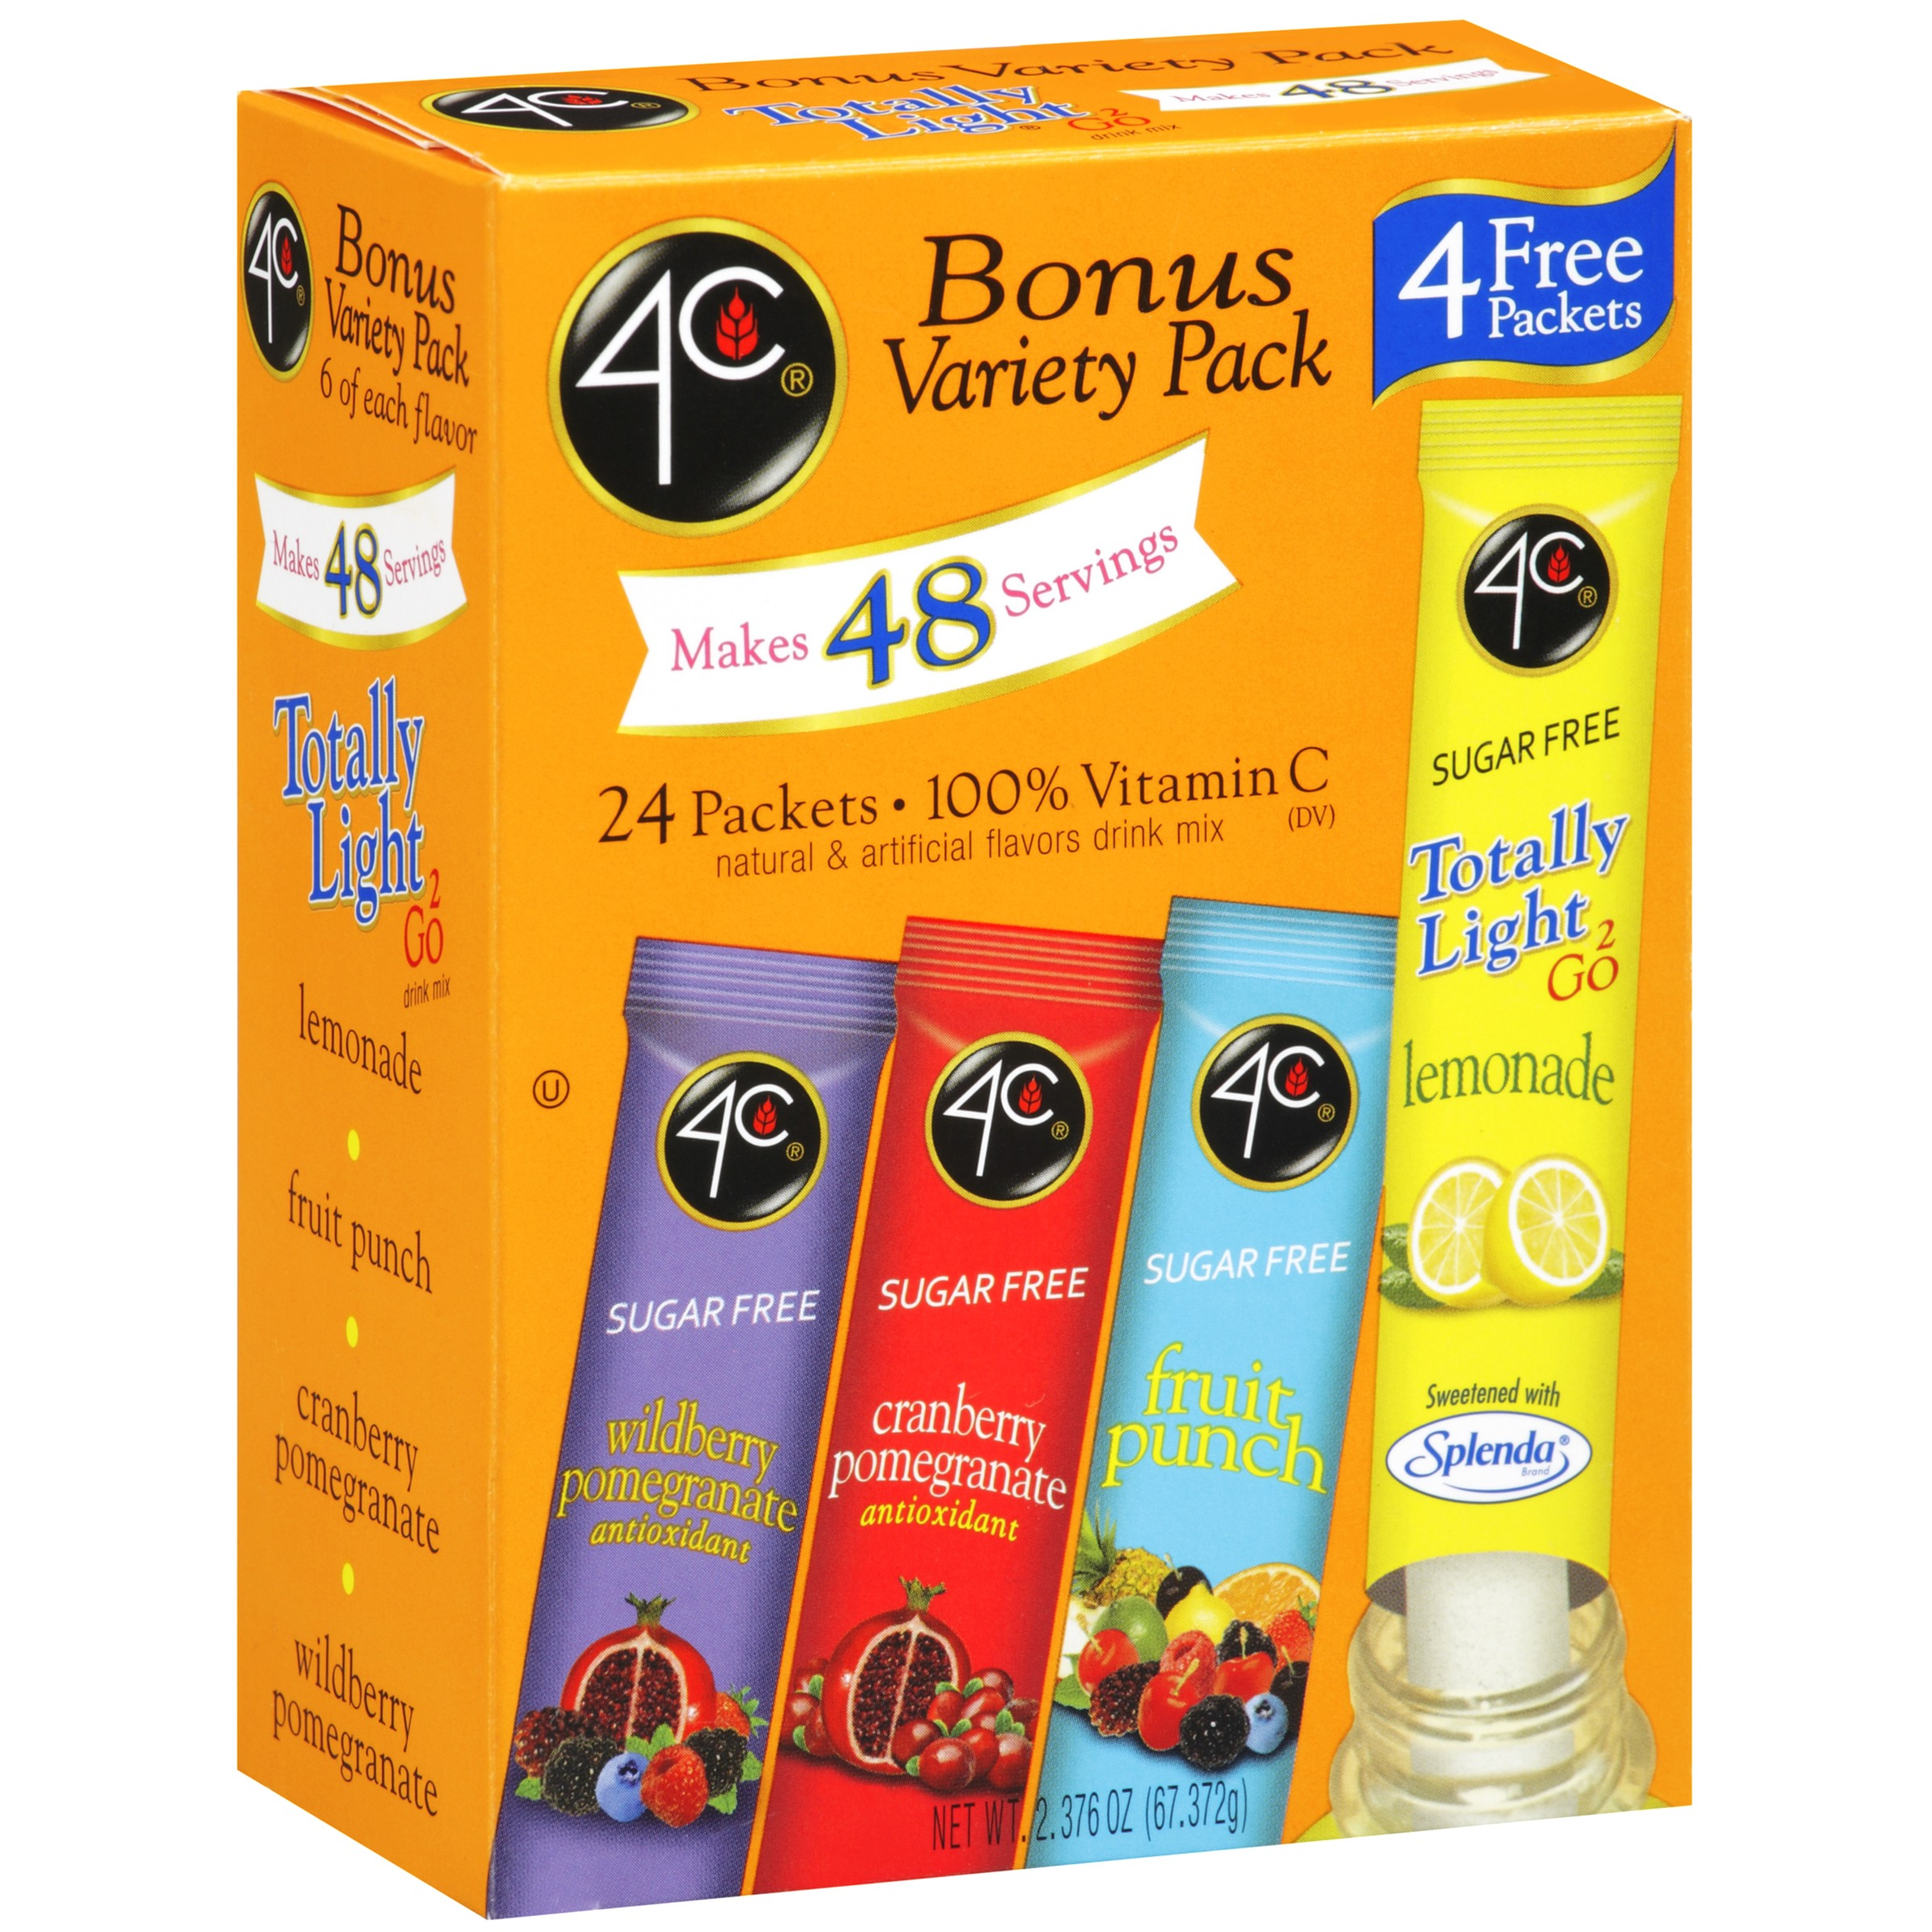 4C Totally Light 2Go Drink Mix, Variety, 2.3 Oz, 24 Packets, 1 Count